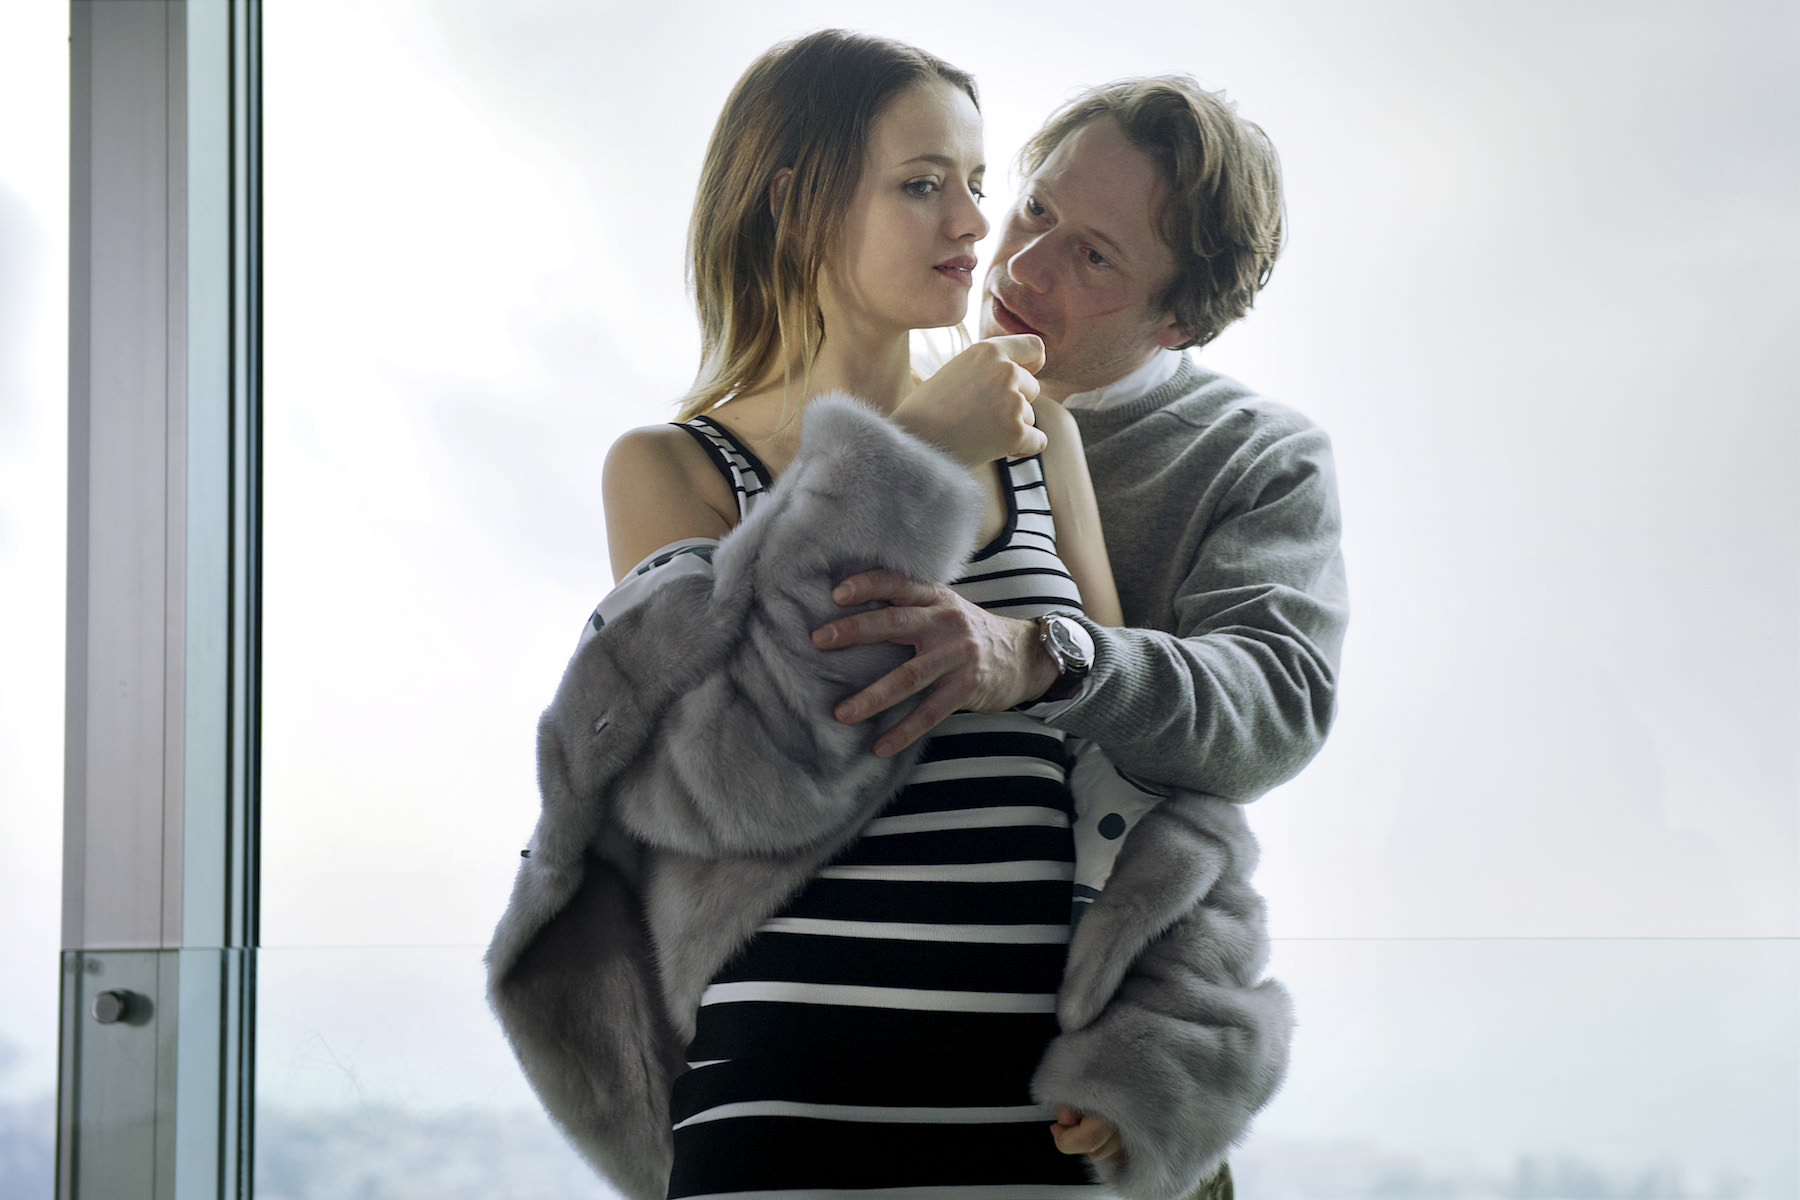 Amour crime parfait larrieu sara forestier mathieu amalric